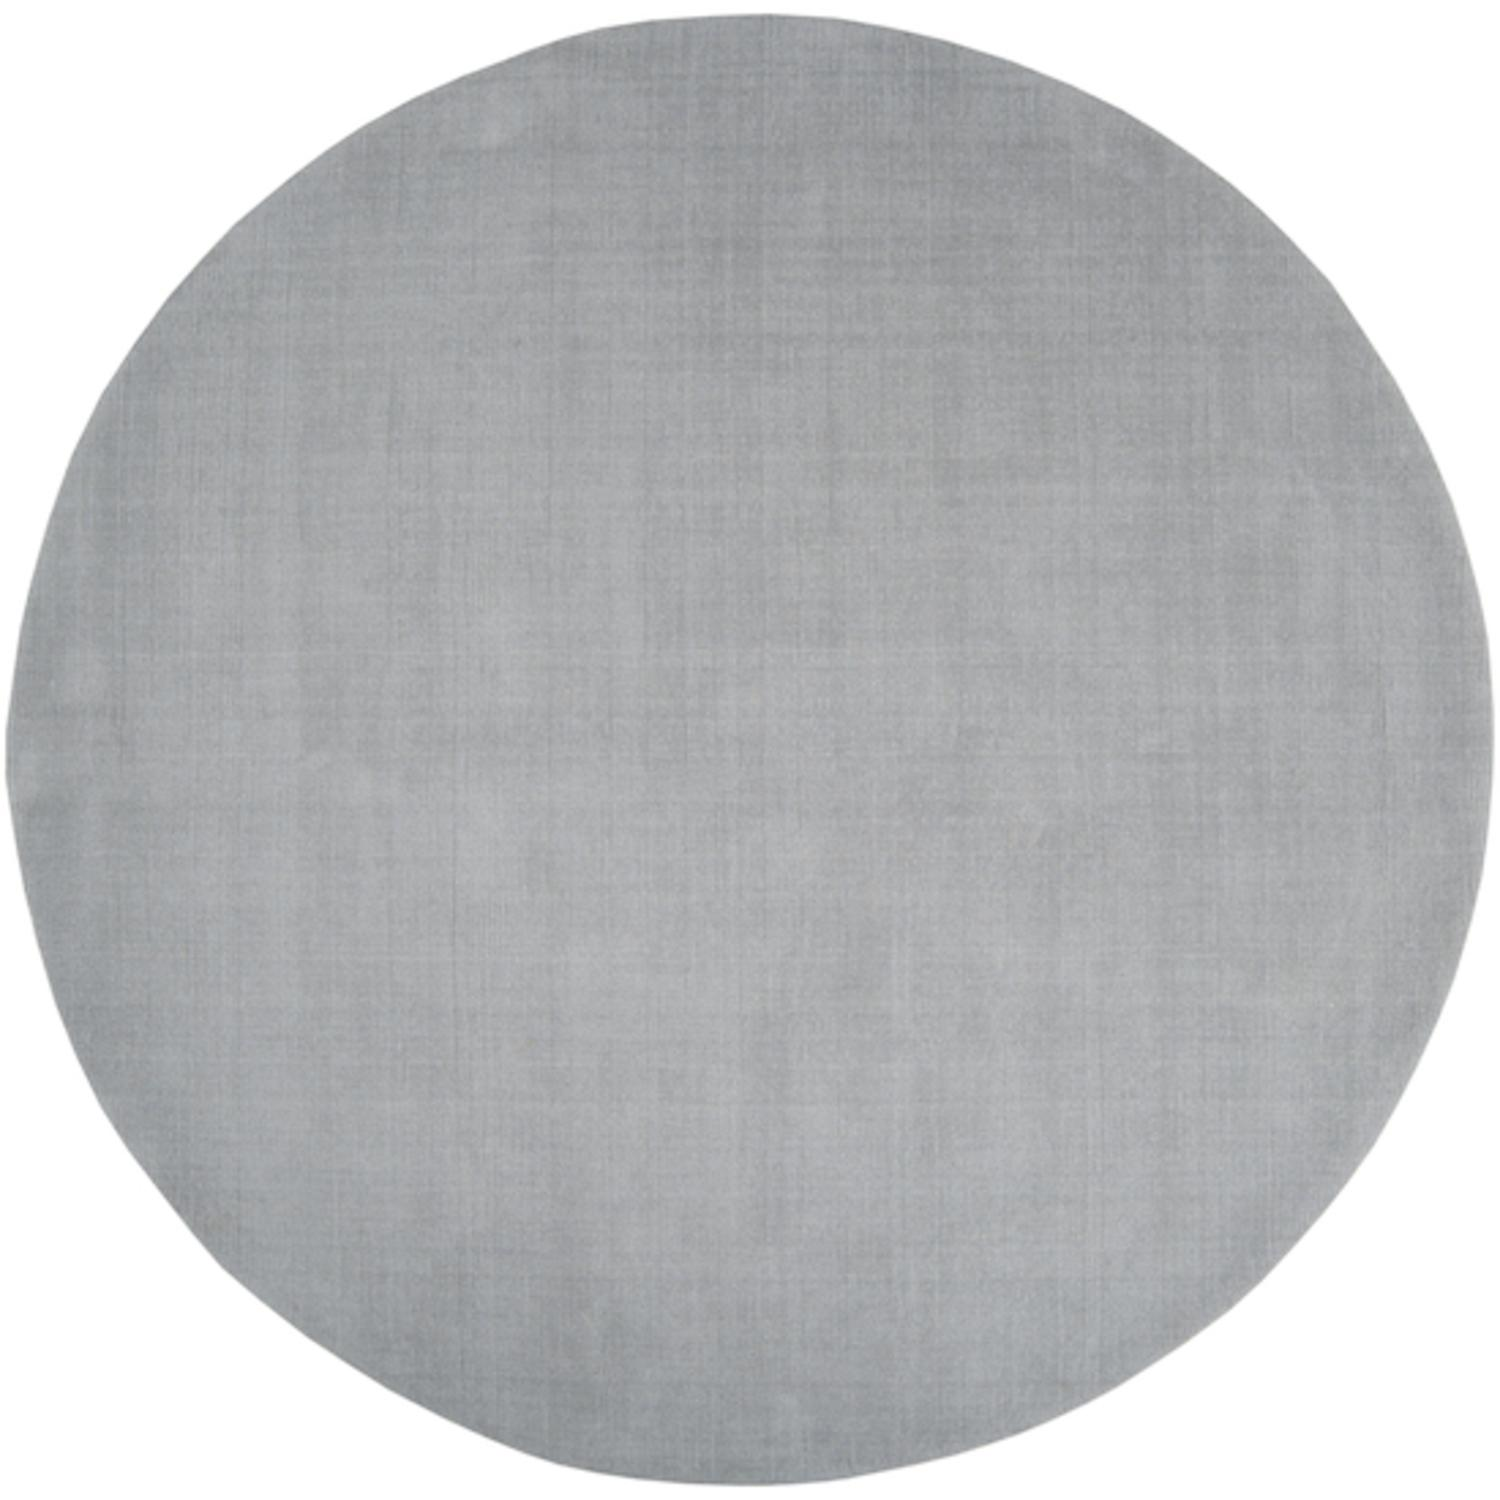 6' Round Rogue Love Charcoal Gray Wool Area Throw Rug